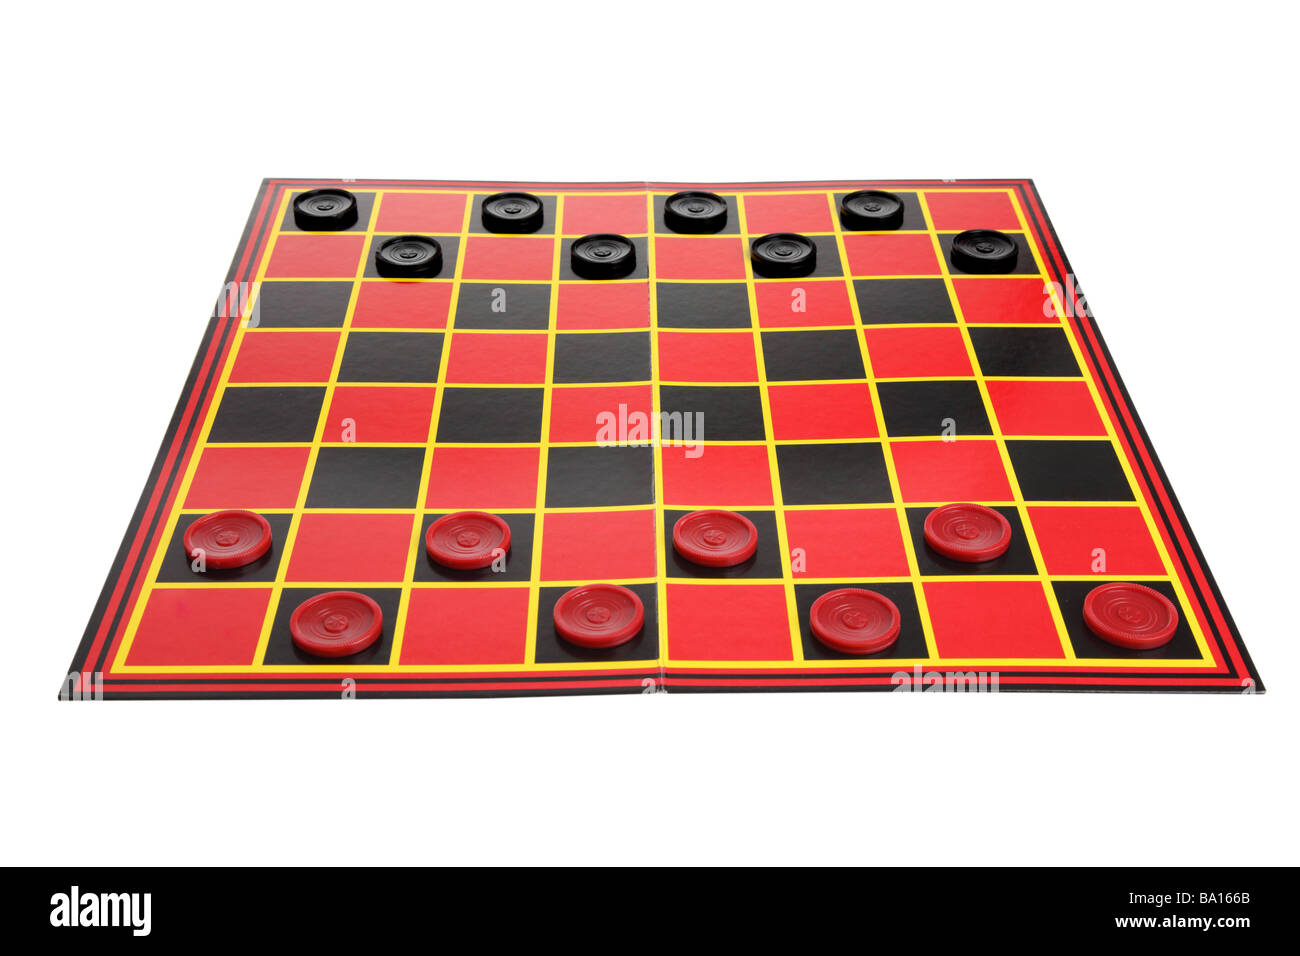 Checkers game board cutout on white background - Stock Image